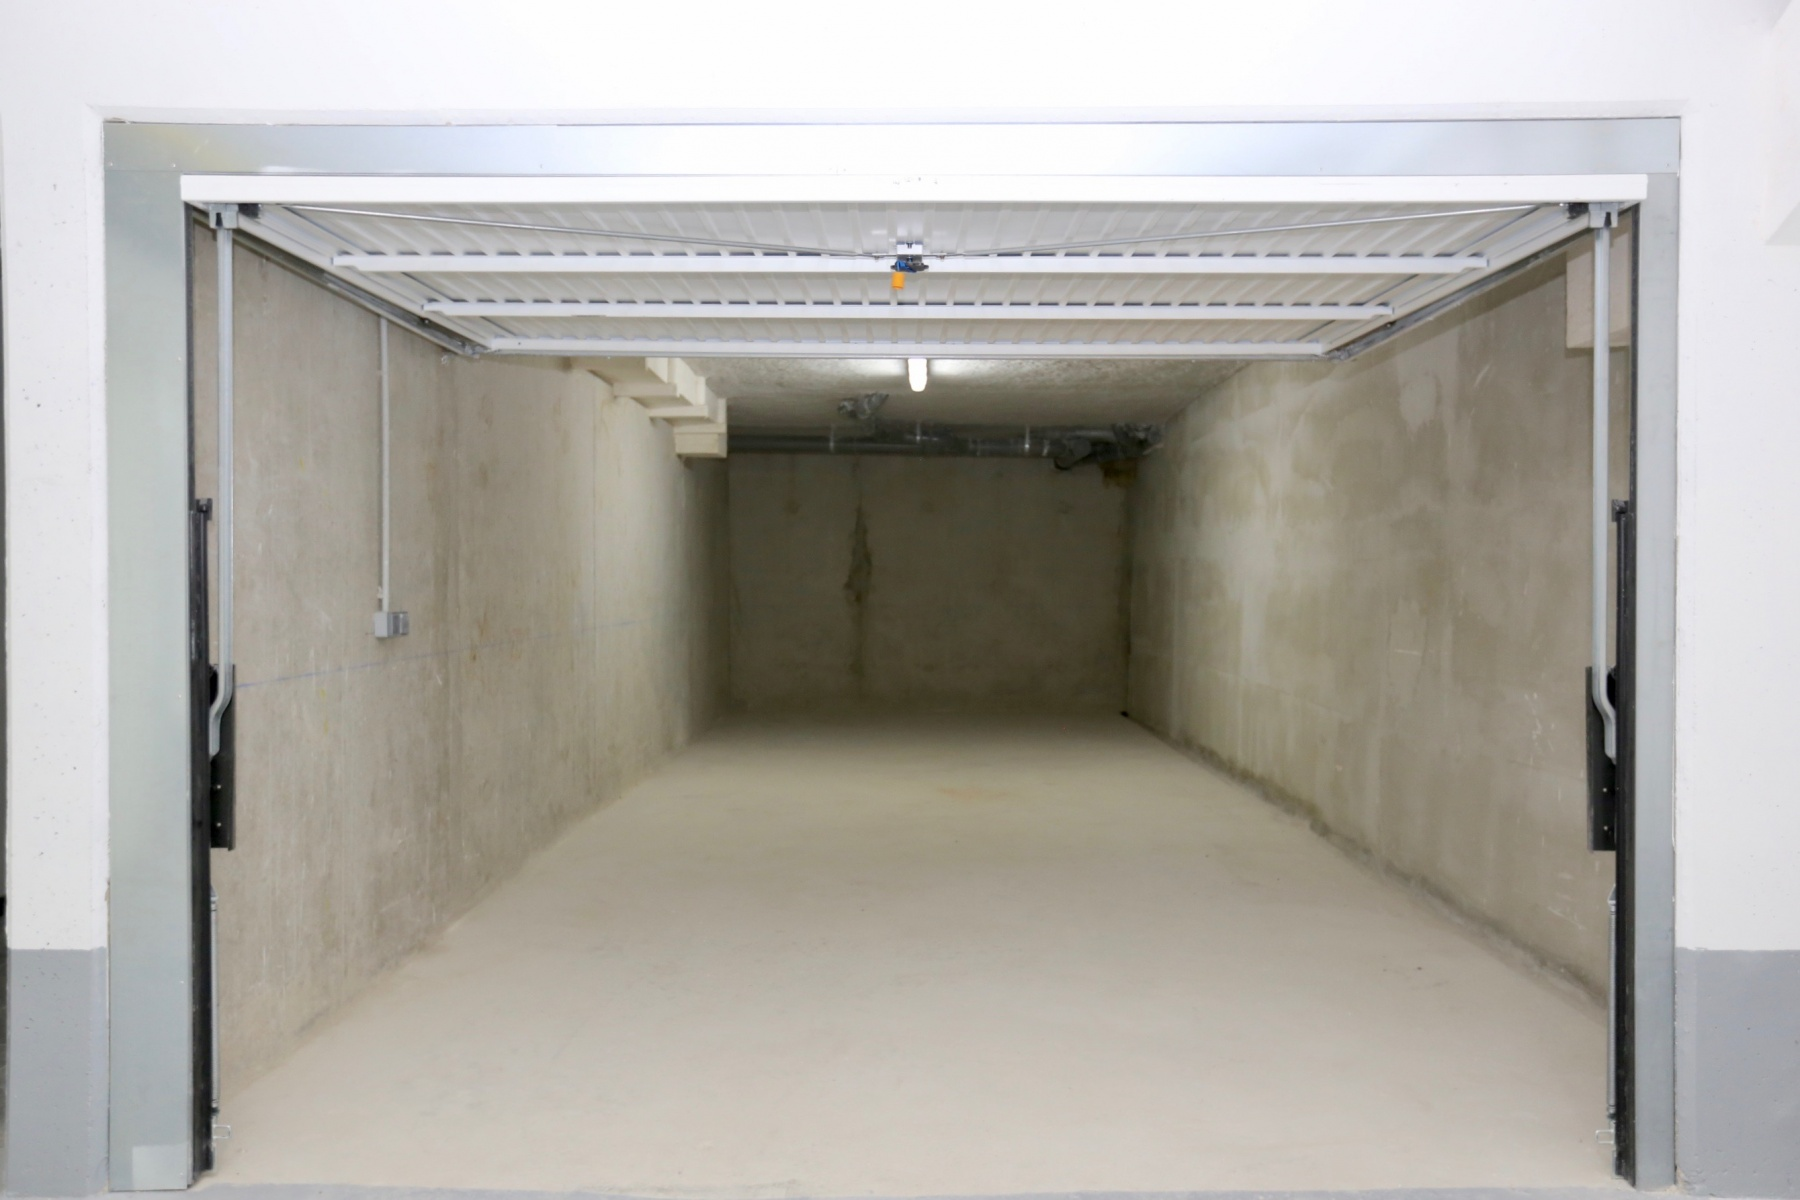 Annonce location parking garage rosny sous bois 93110 for Garage opel rosny sous bois